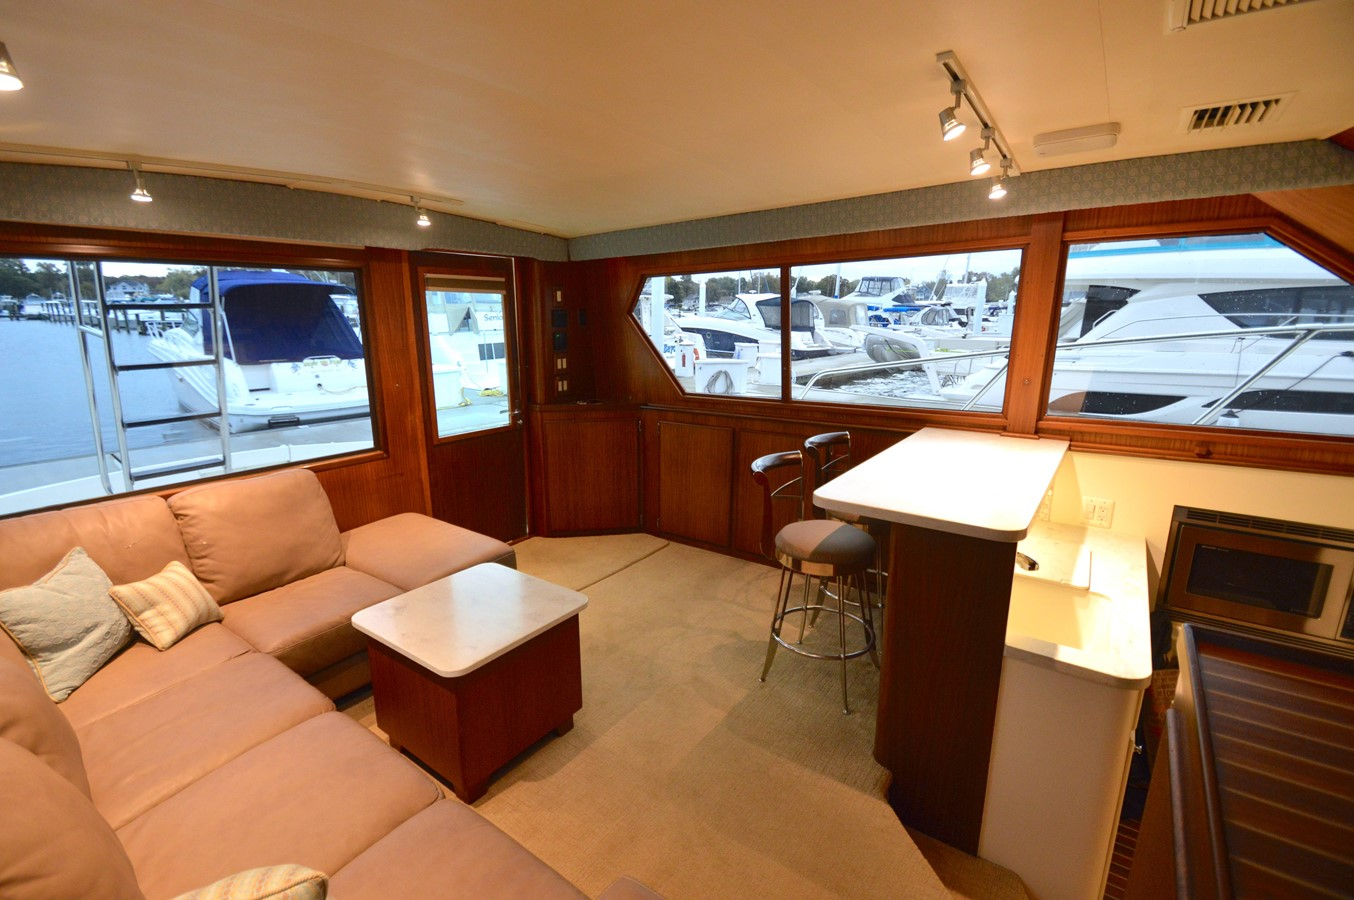 2 - 48 HATTERAS For Sale